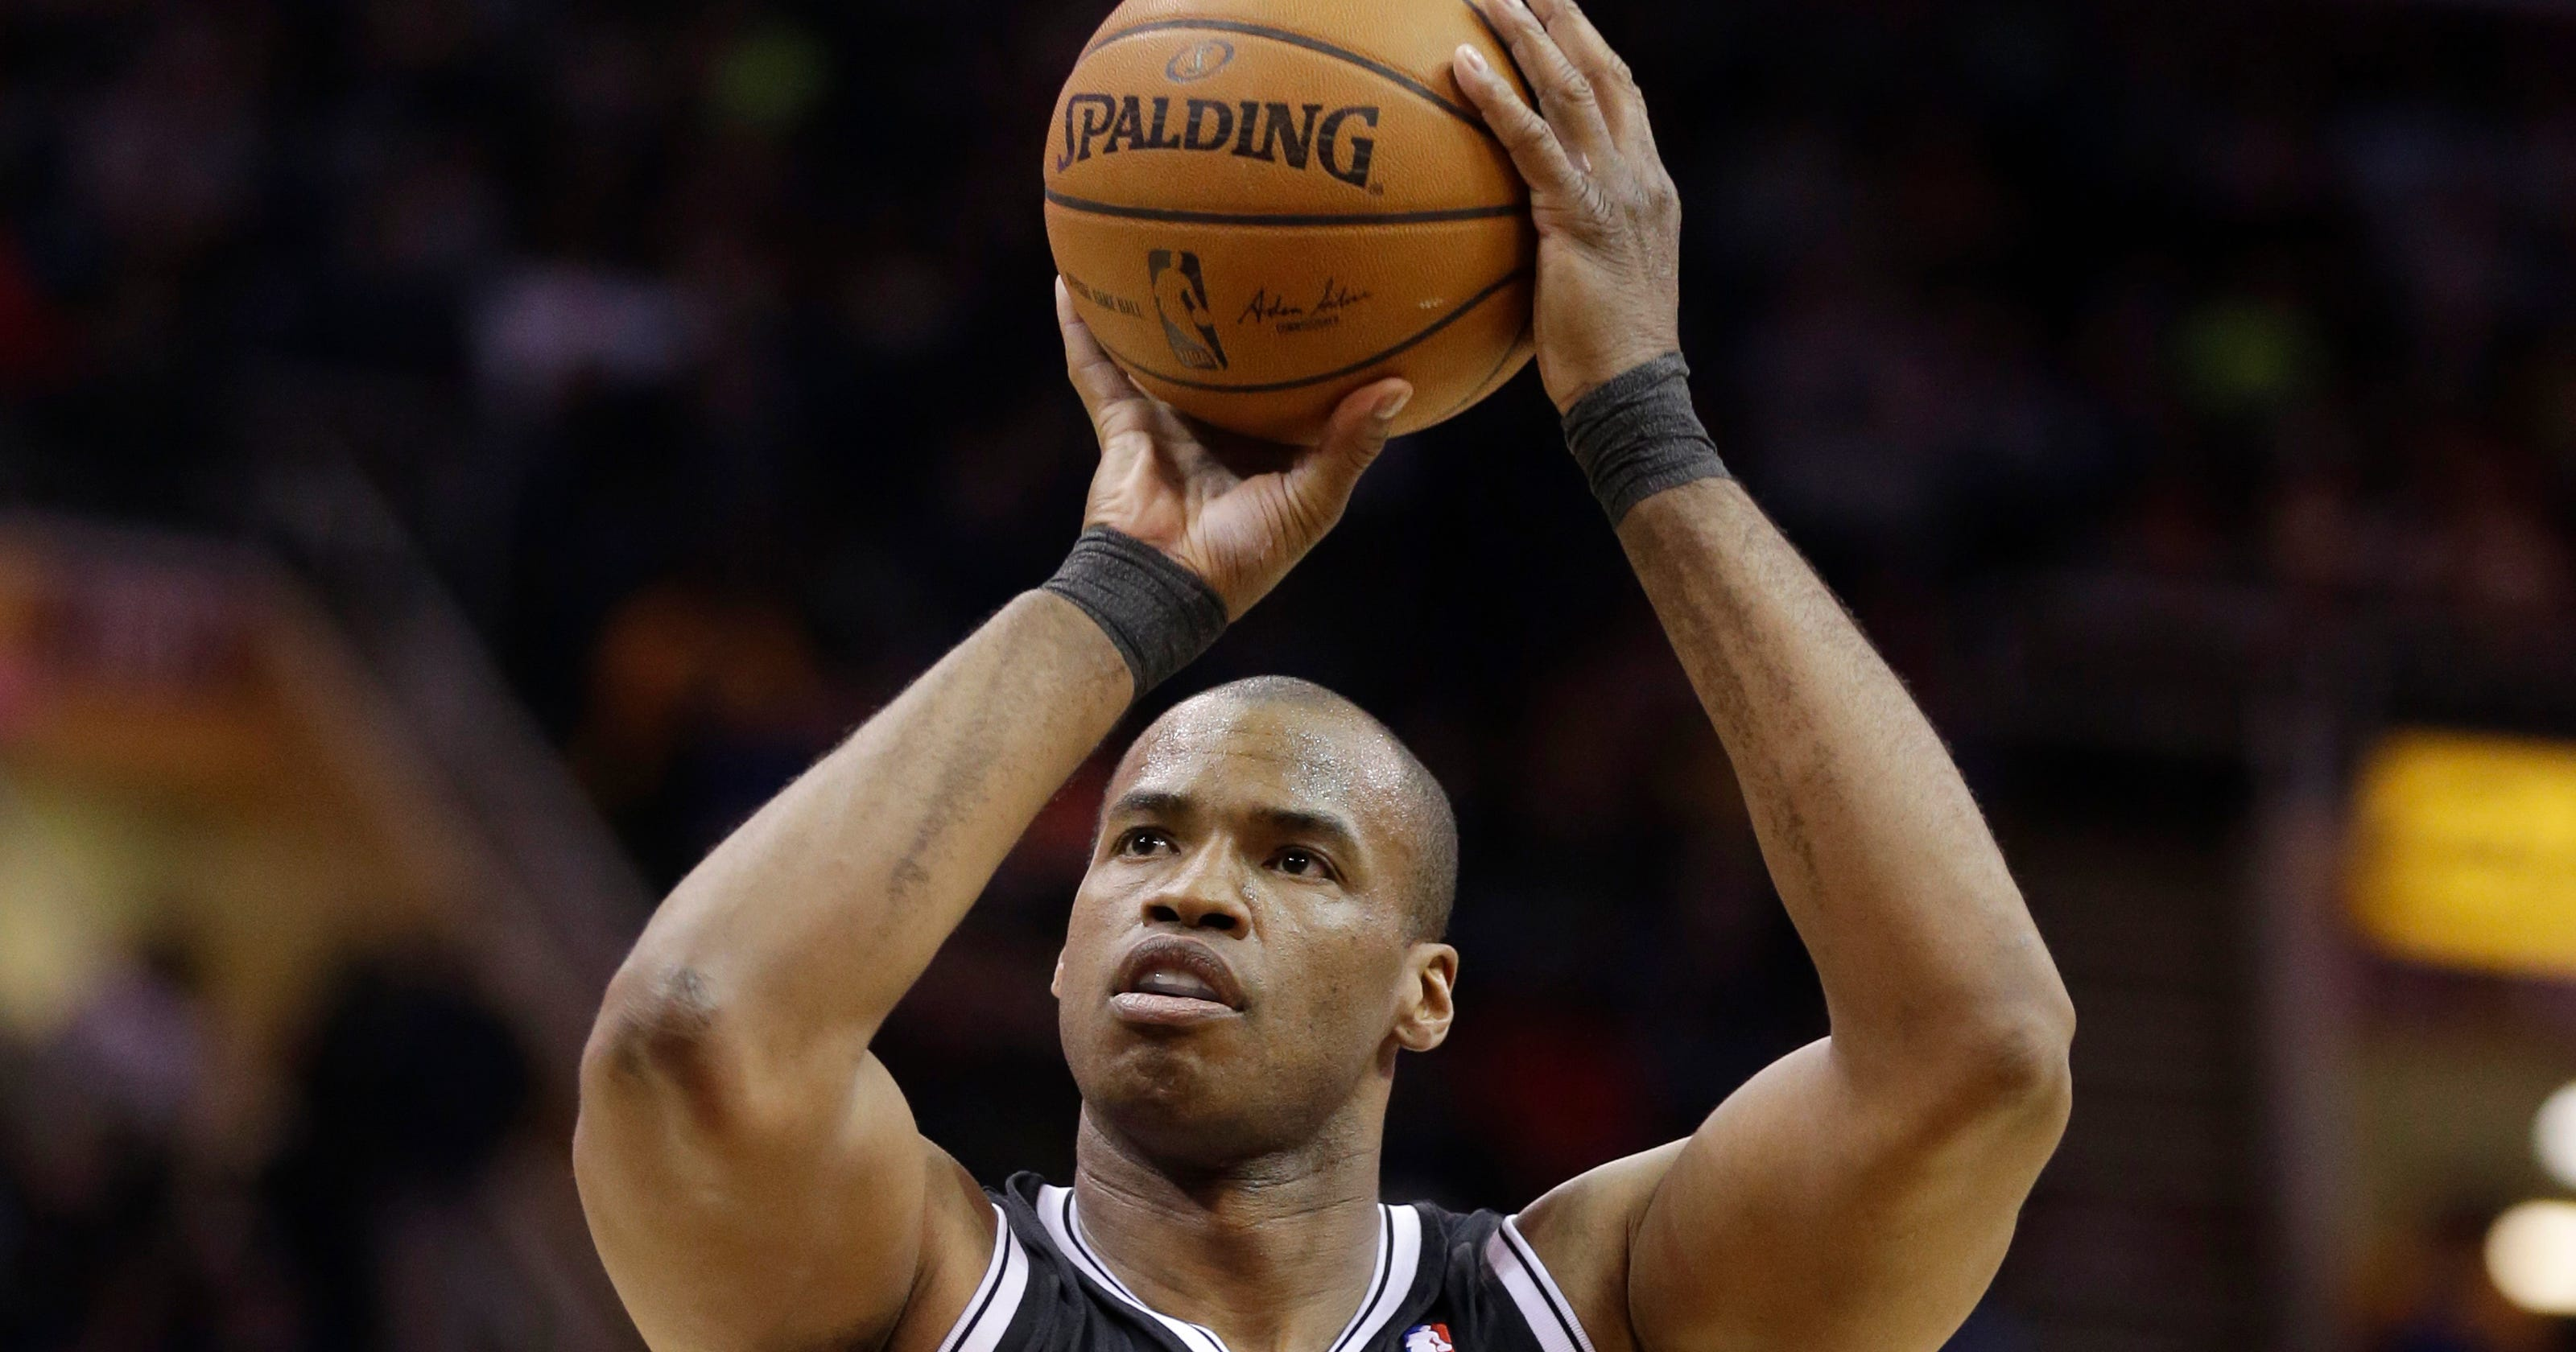 dc204e6f061 Collins, NBA's first openly gay player, retires